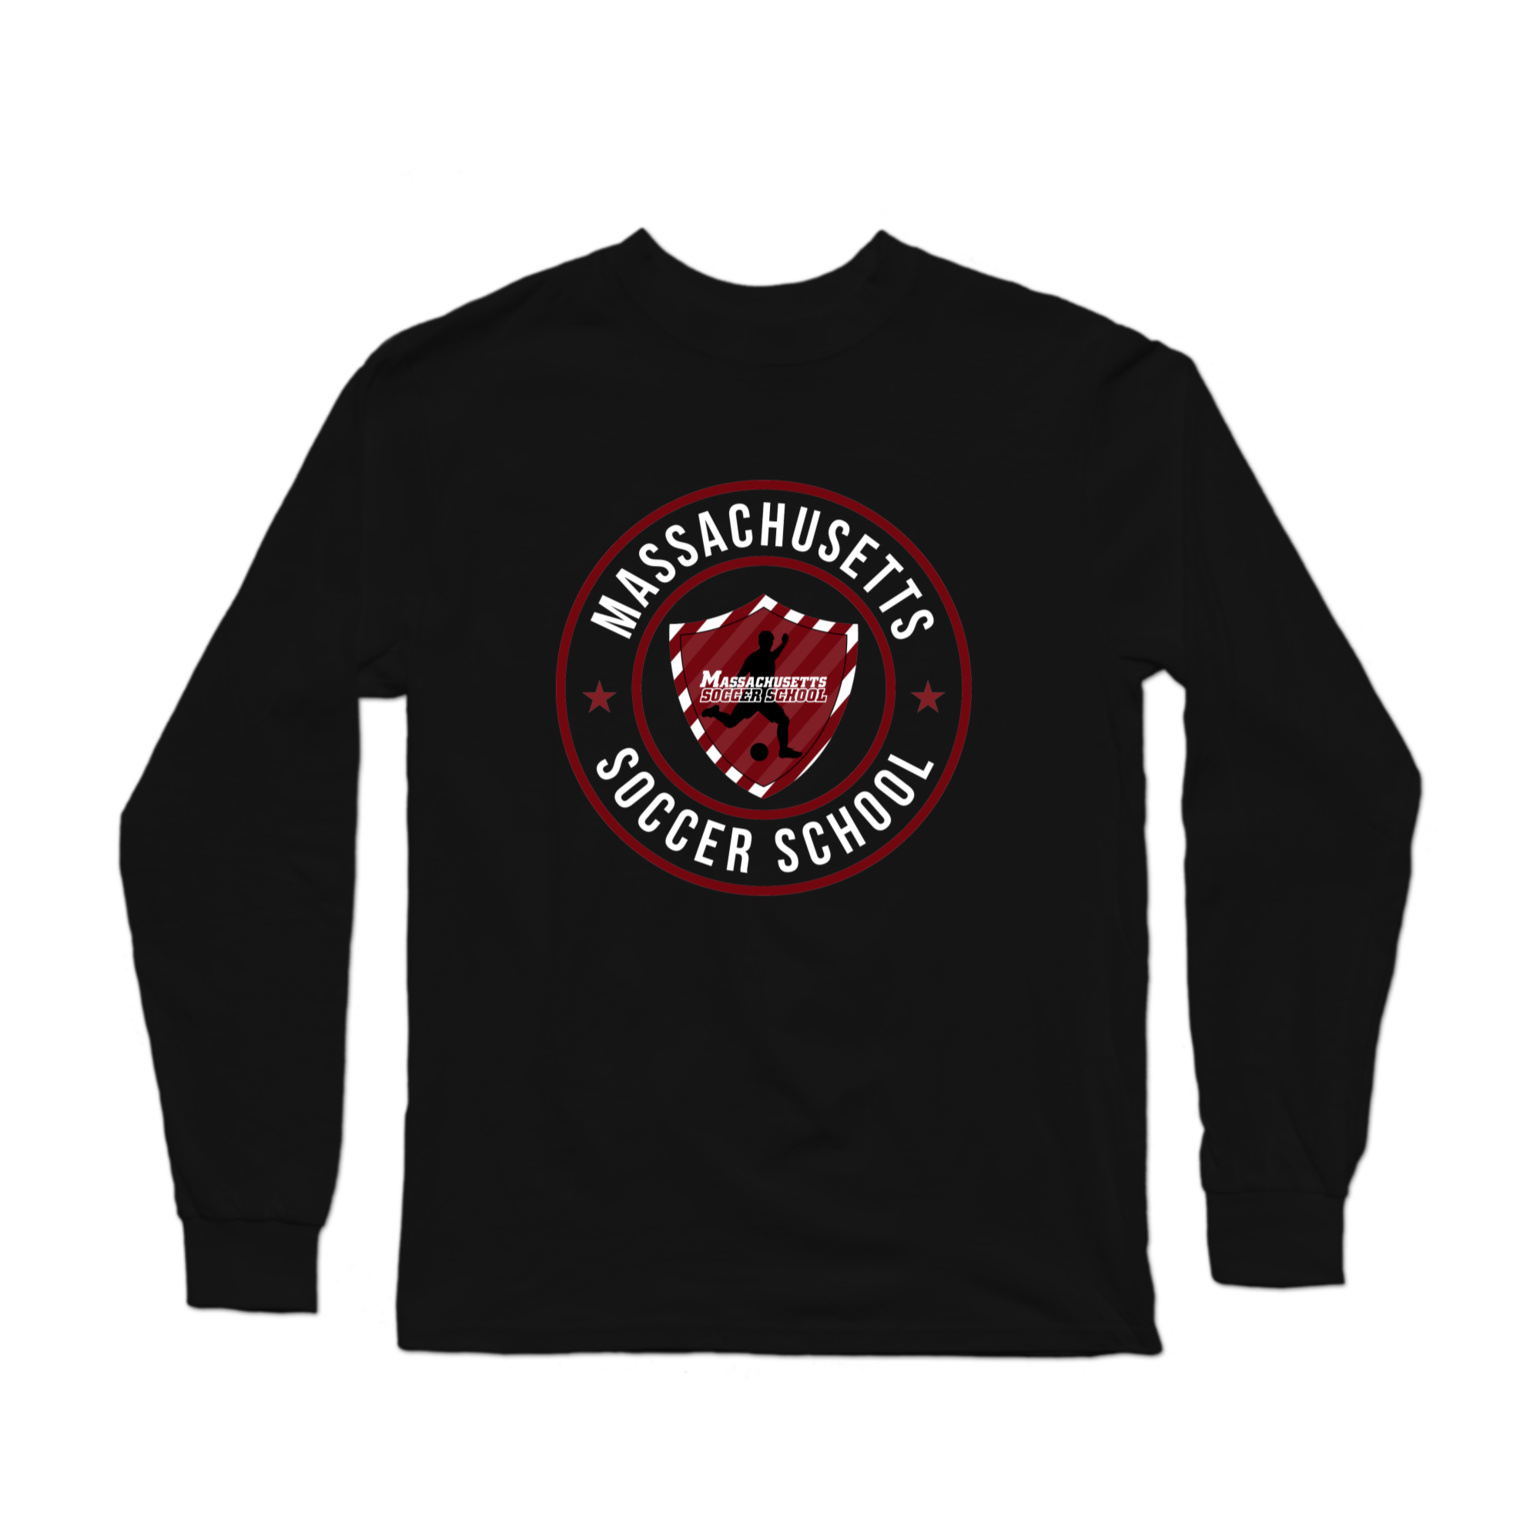 Massachusetts Soccer School Longsleeve Shirt